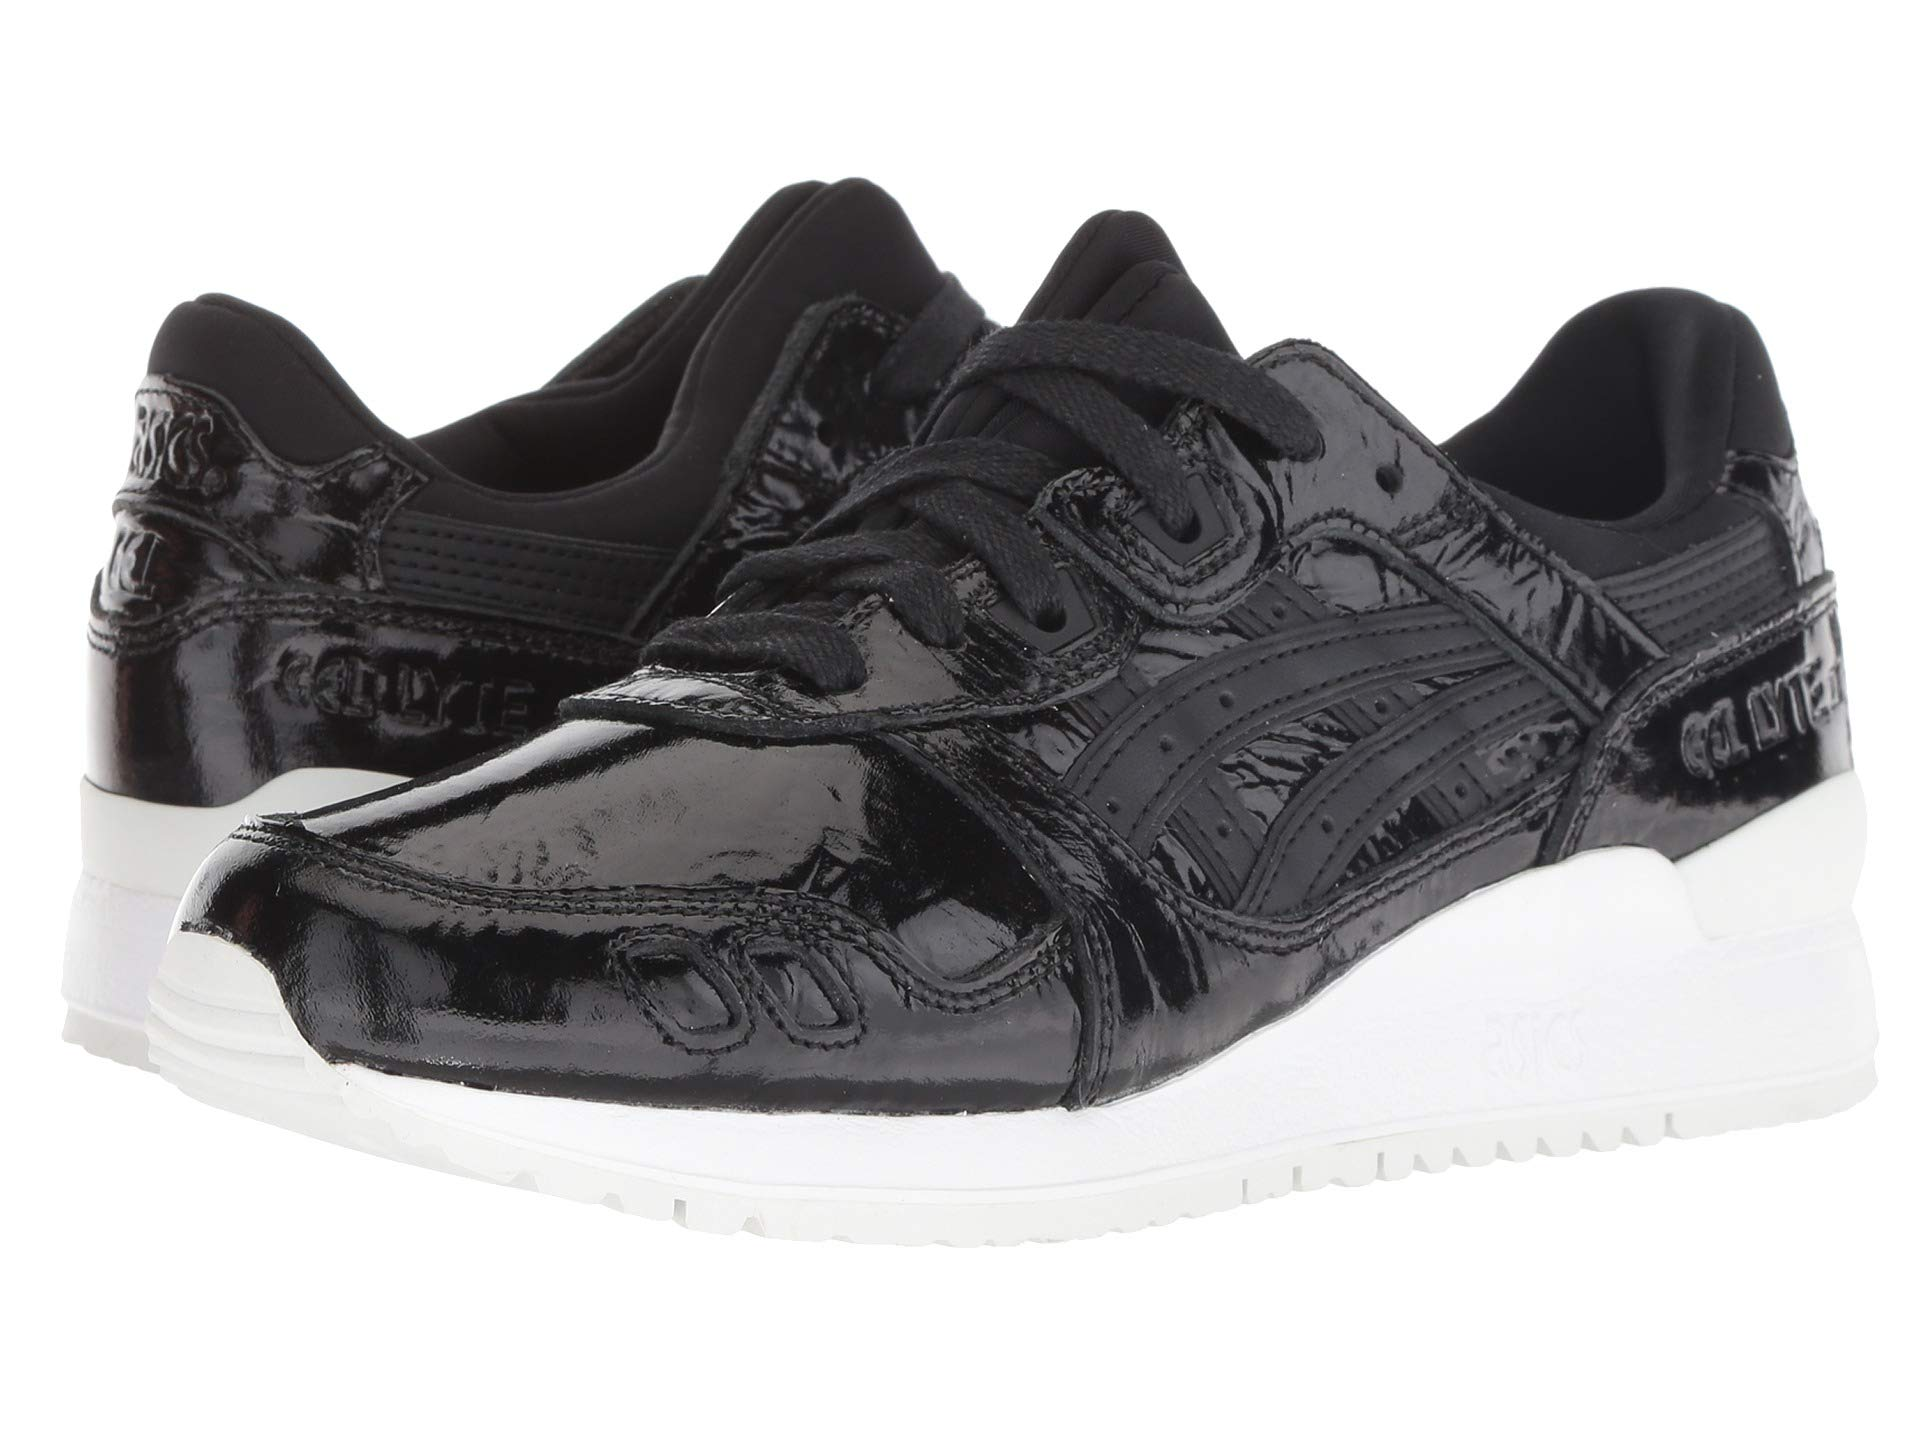 quality design 5e4e1 0290f Кроссовки ASICS Gel-Lyte III Black, 36 (225 мм) (10119147)